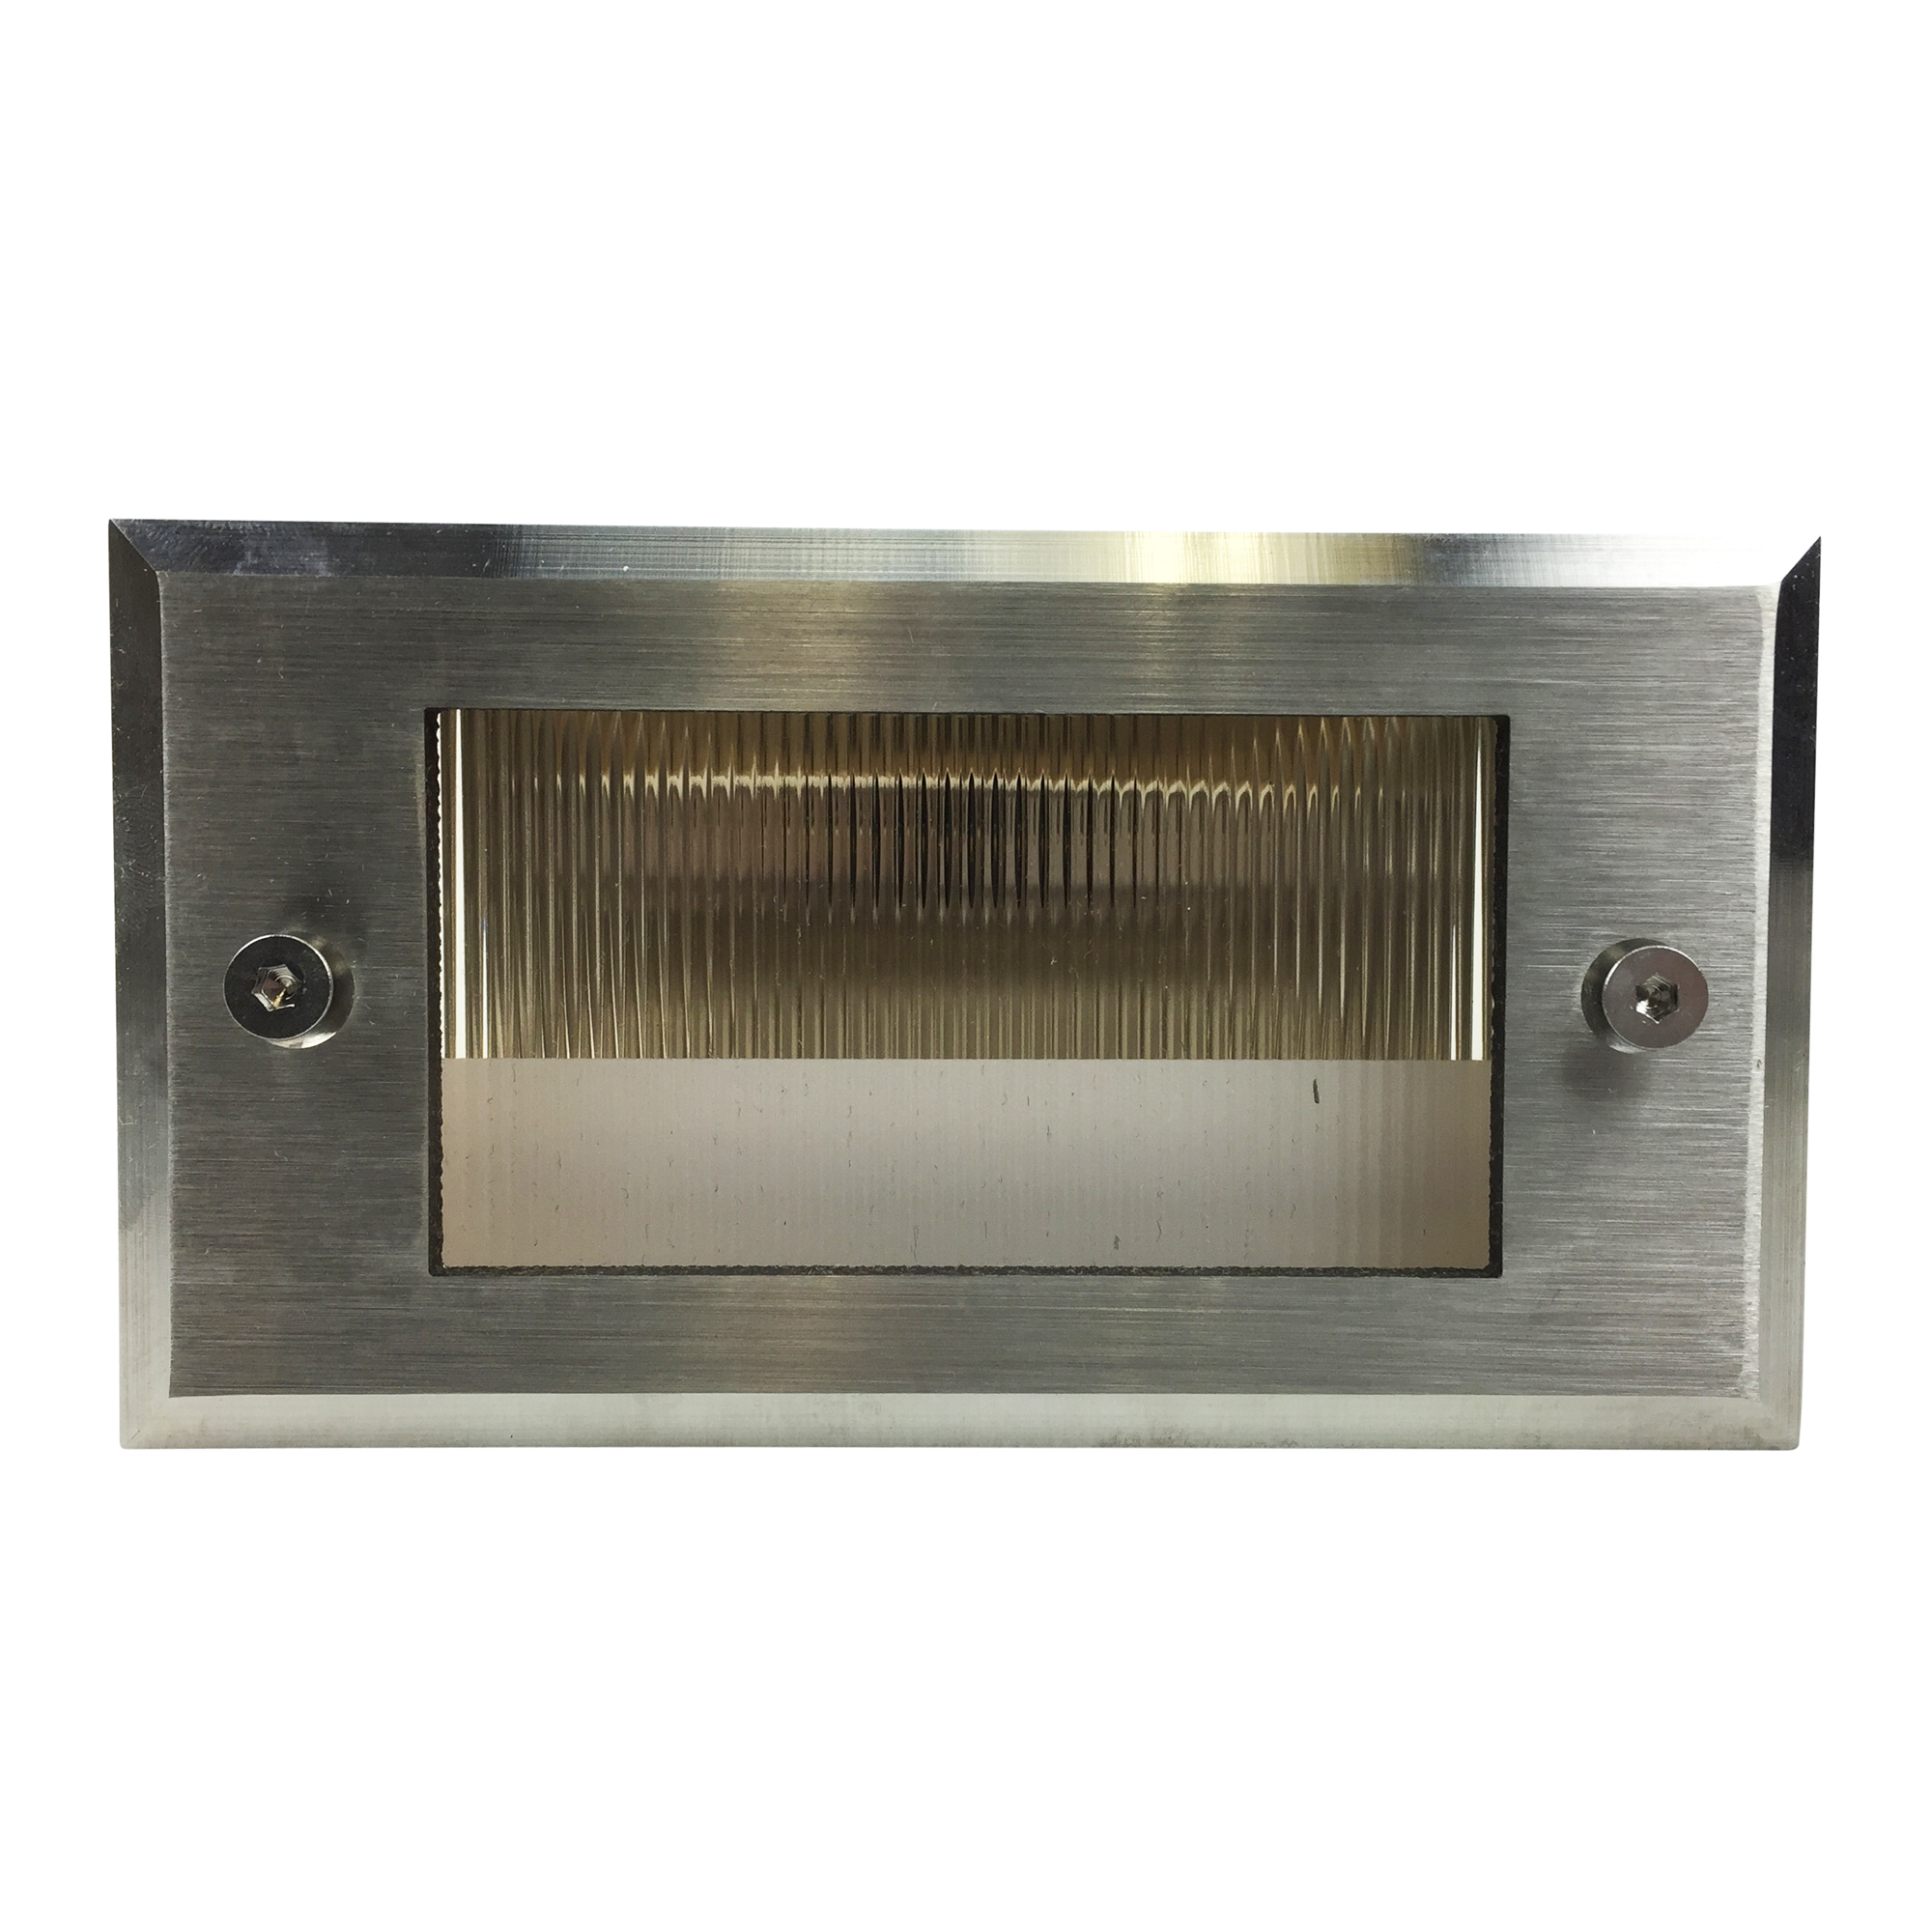 BEGA 1325LED RECESSED WALL LED LUMINAIR LIGHT FIXTURE, HOUSING, 3000K, STAINLESS eBay